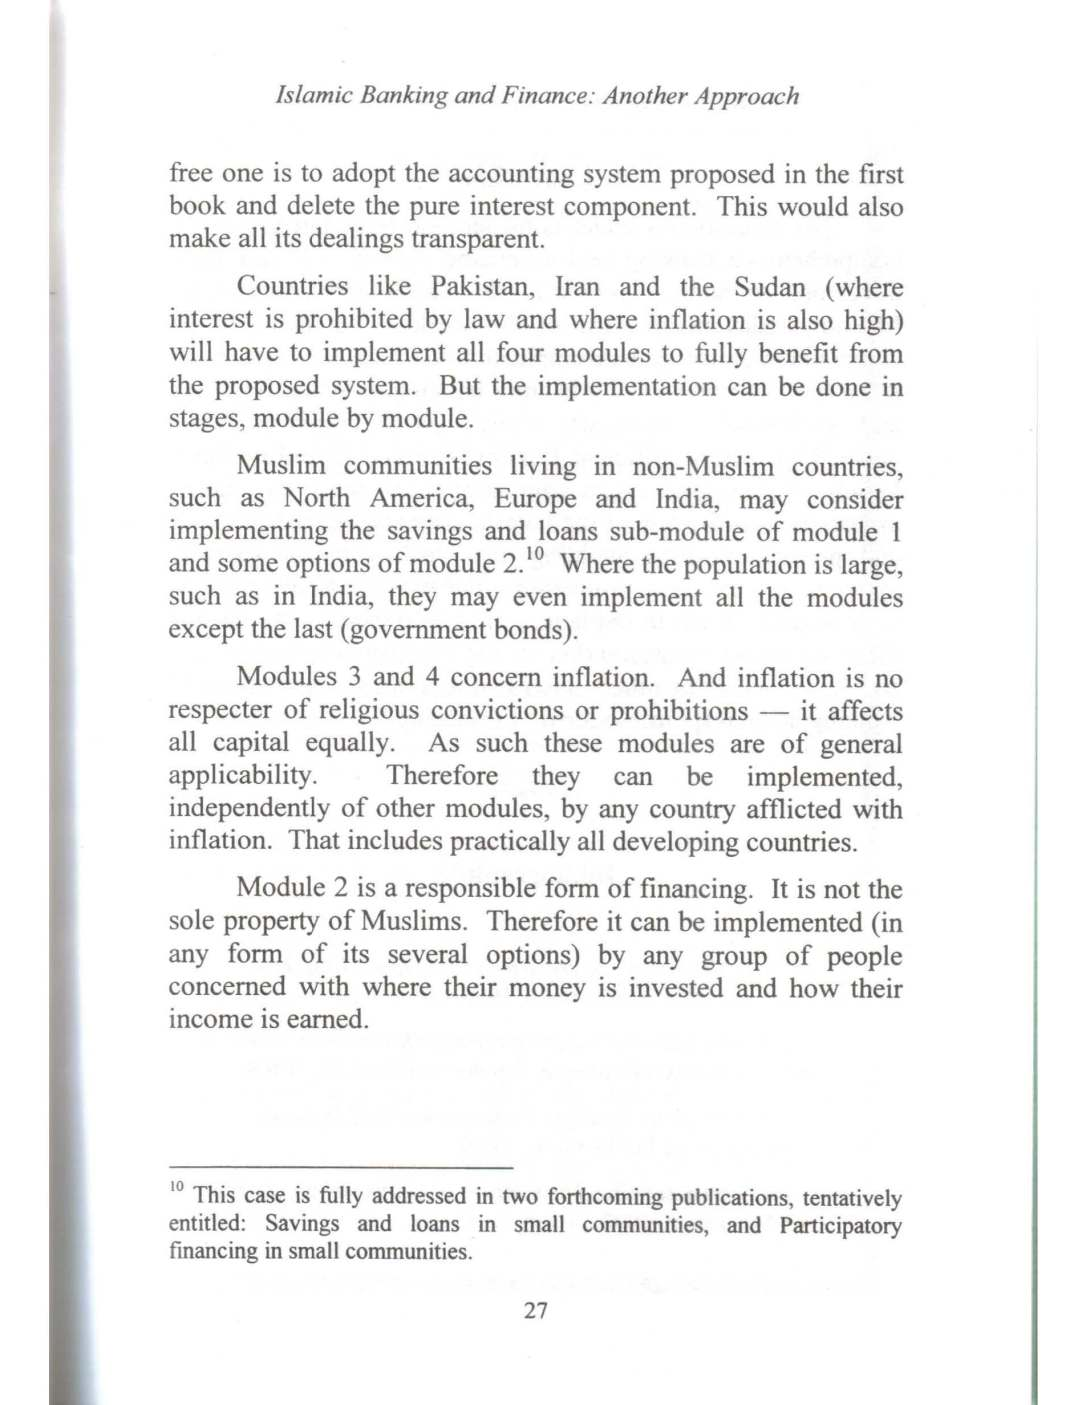 Islamic Banking and Finance - Another Approach_Page_28